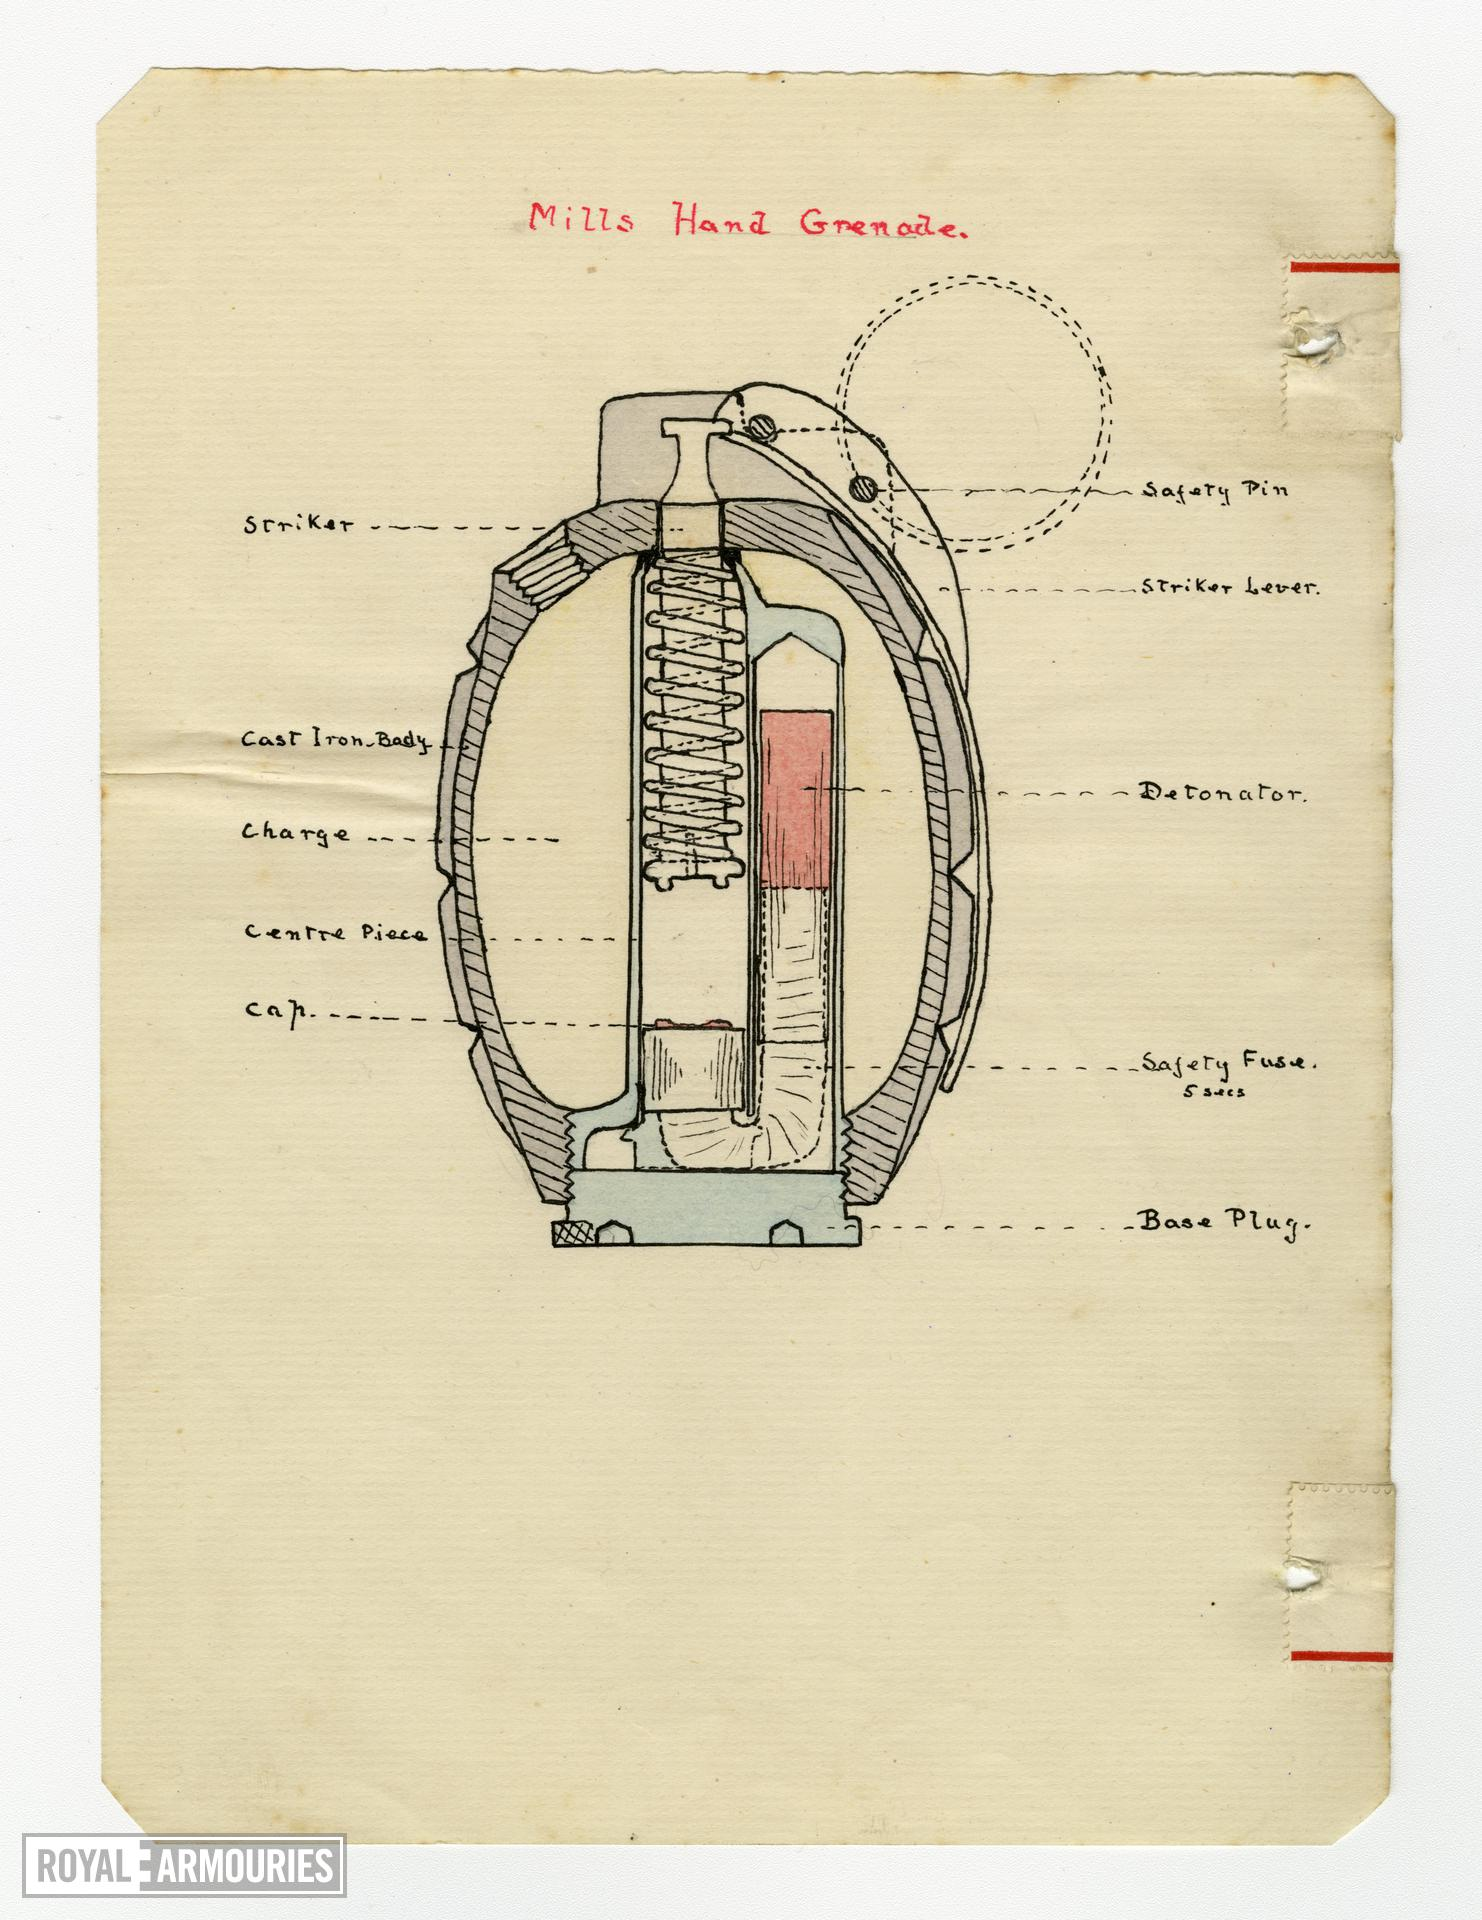 Instructional diagram showing the Mills Hand Grenade, Godstone Grenade School, Britain, 1917, taken from a loose-leaf notebook belonging to Lieutenant J.M.Y Trotter, No.2 Officer Cadet Battalion, relating to his training.